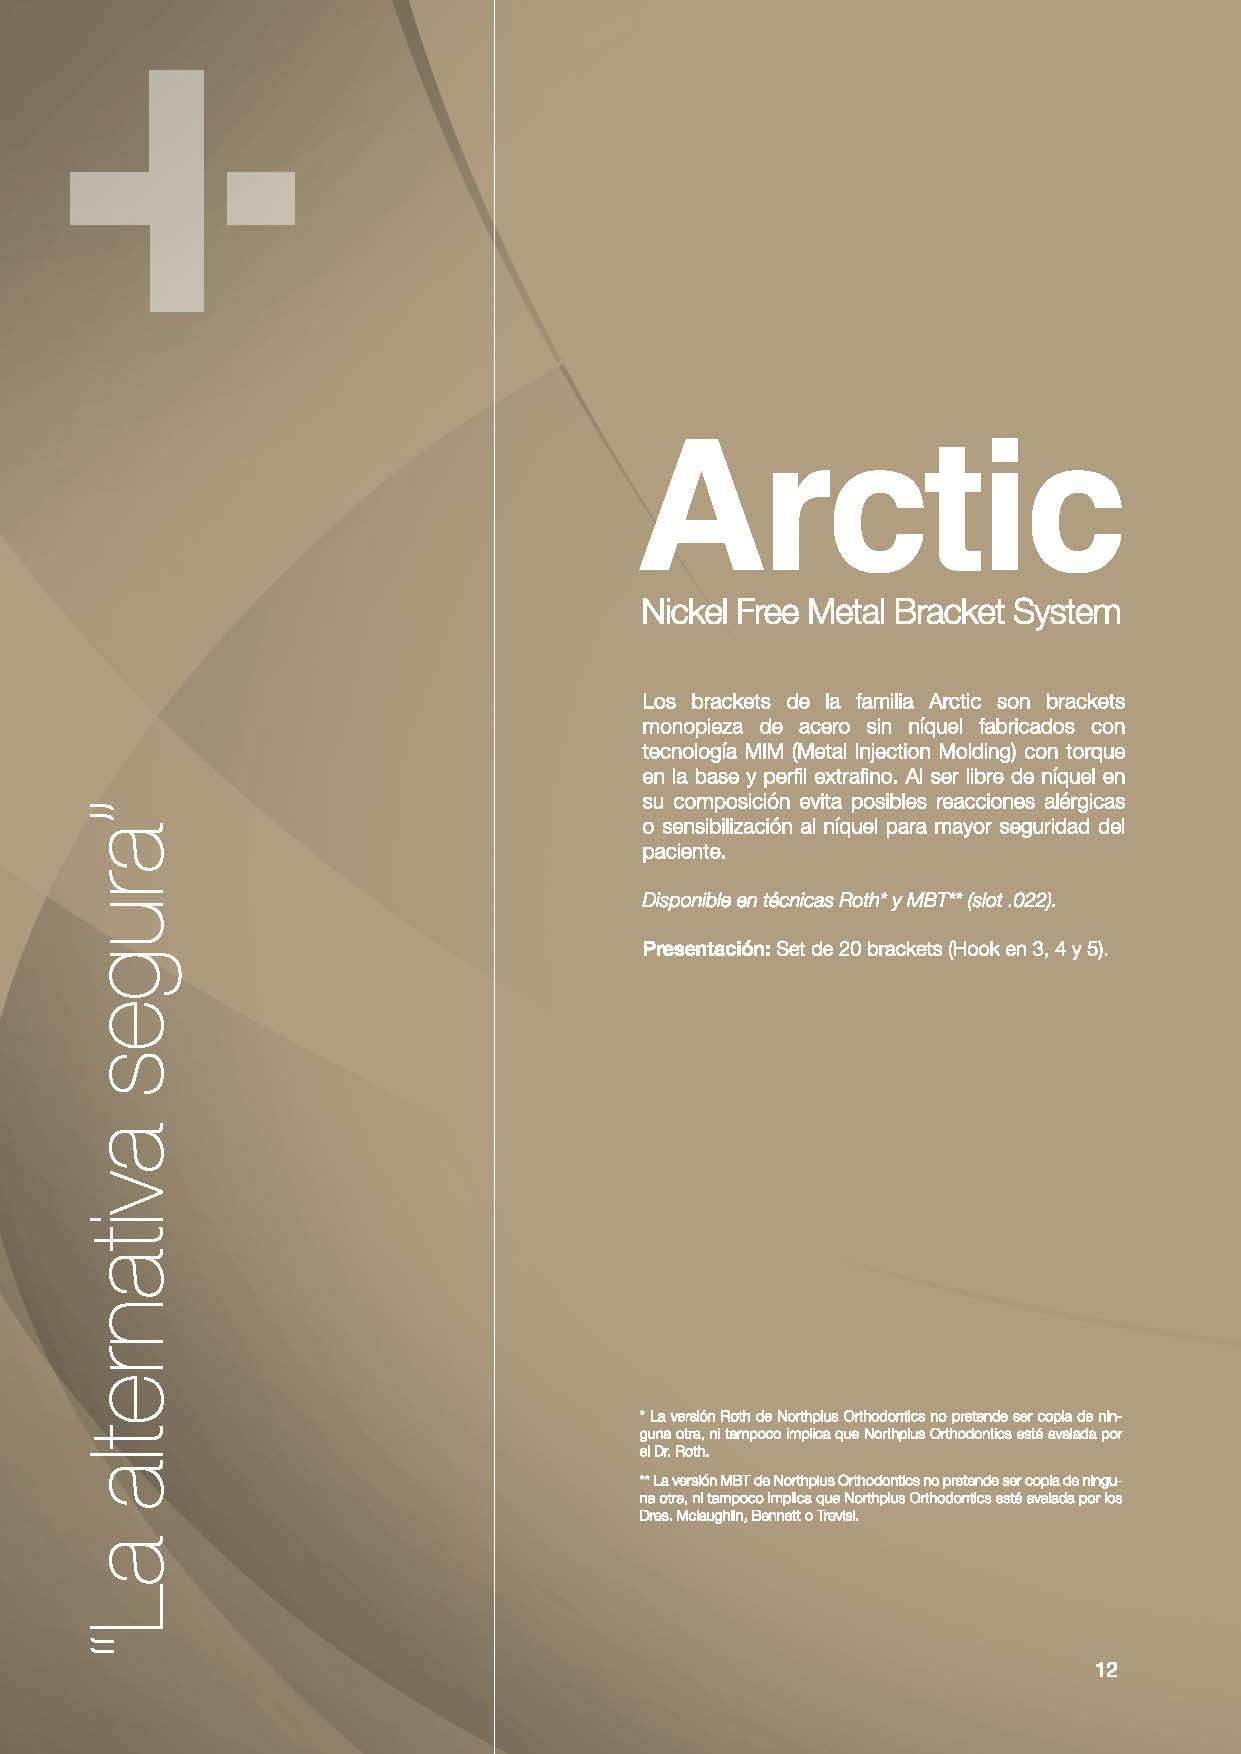 ARCTIC NORTHPLUS ORTHODONTICS